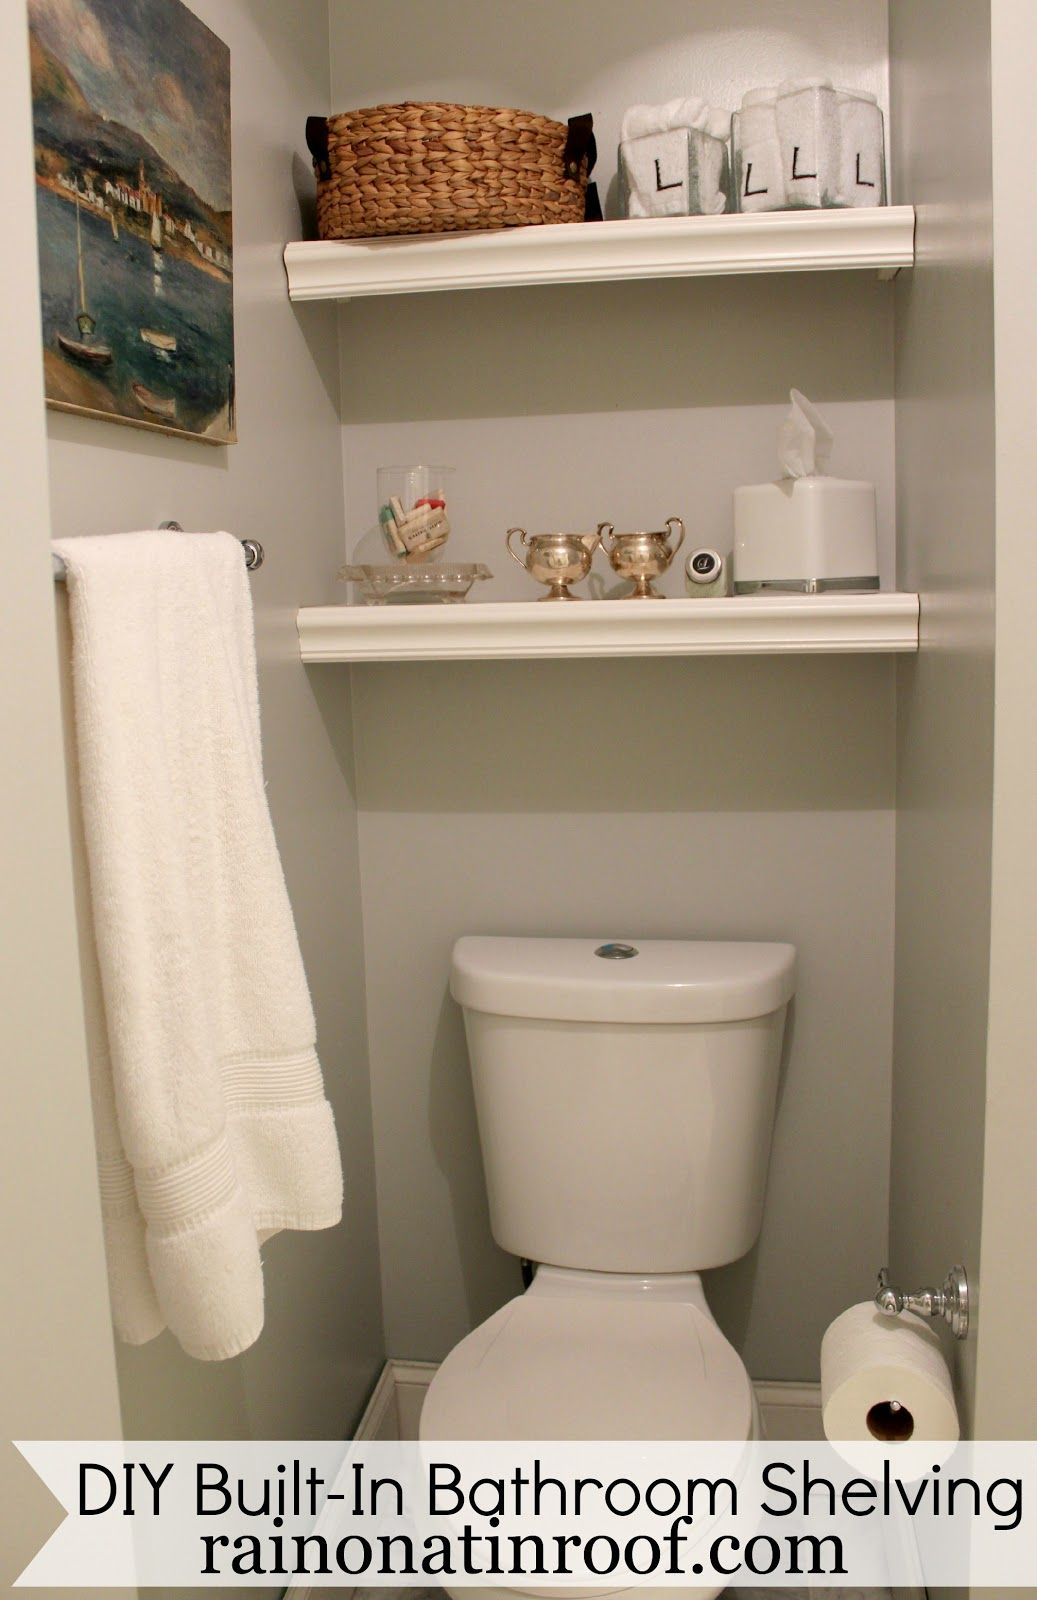 Built In Bathroom Shelving Diy For 25 Or Less Over Toilet Storage Gray Bathroom Decor Bathroom Shelves